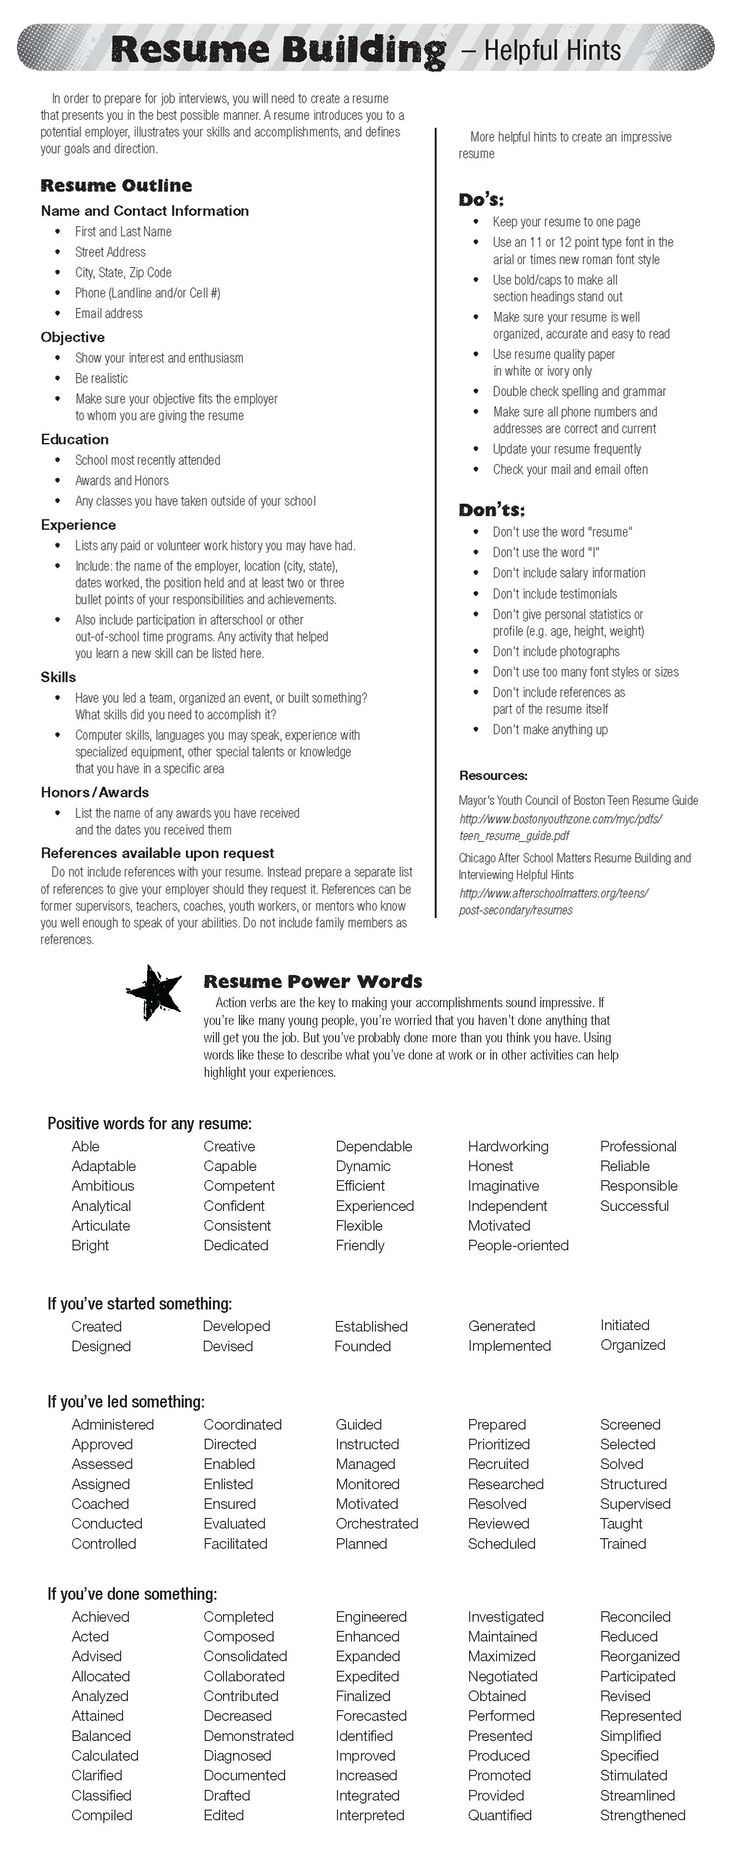 Opposenewapstandardsus  Seductive  Ideas About Resume On Pinterest  Cv Format Resume Cv And  With Extraordinary  Ideas About Resume On Pinterest  Cv Format Resume Cv And Resume Templates With Cute Computer Science Graduate Resume Also Writing The Best Resume In Addition Administrative Officer Resume And How To Make Up A Resume As Well As Dental Assistant Skills For Resume Additionally How To Write A One Page Resume From Pinterestcom With Opposenewapstandardsus  Extraordinary  Ideas About Resume On Pinterest  Cv Format Resume Cv And  With Cute  Ideas About Resume On Pinterest  Cv Format Resume Cv And Resume Templates And Seductive Computer Science Graduate Resume Also Writing The Best Resume In Addition Administrative Officer Resume From Pinterestcom